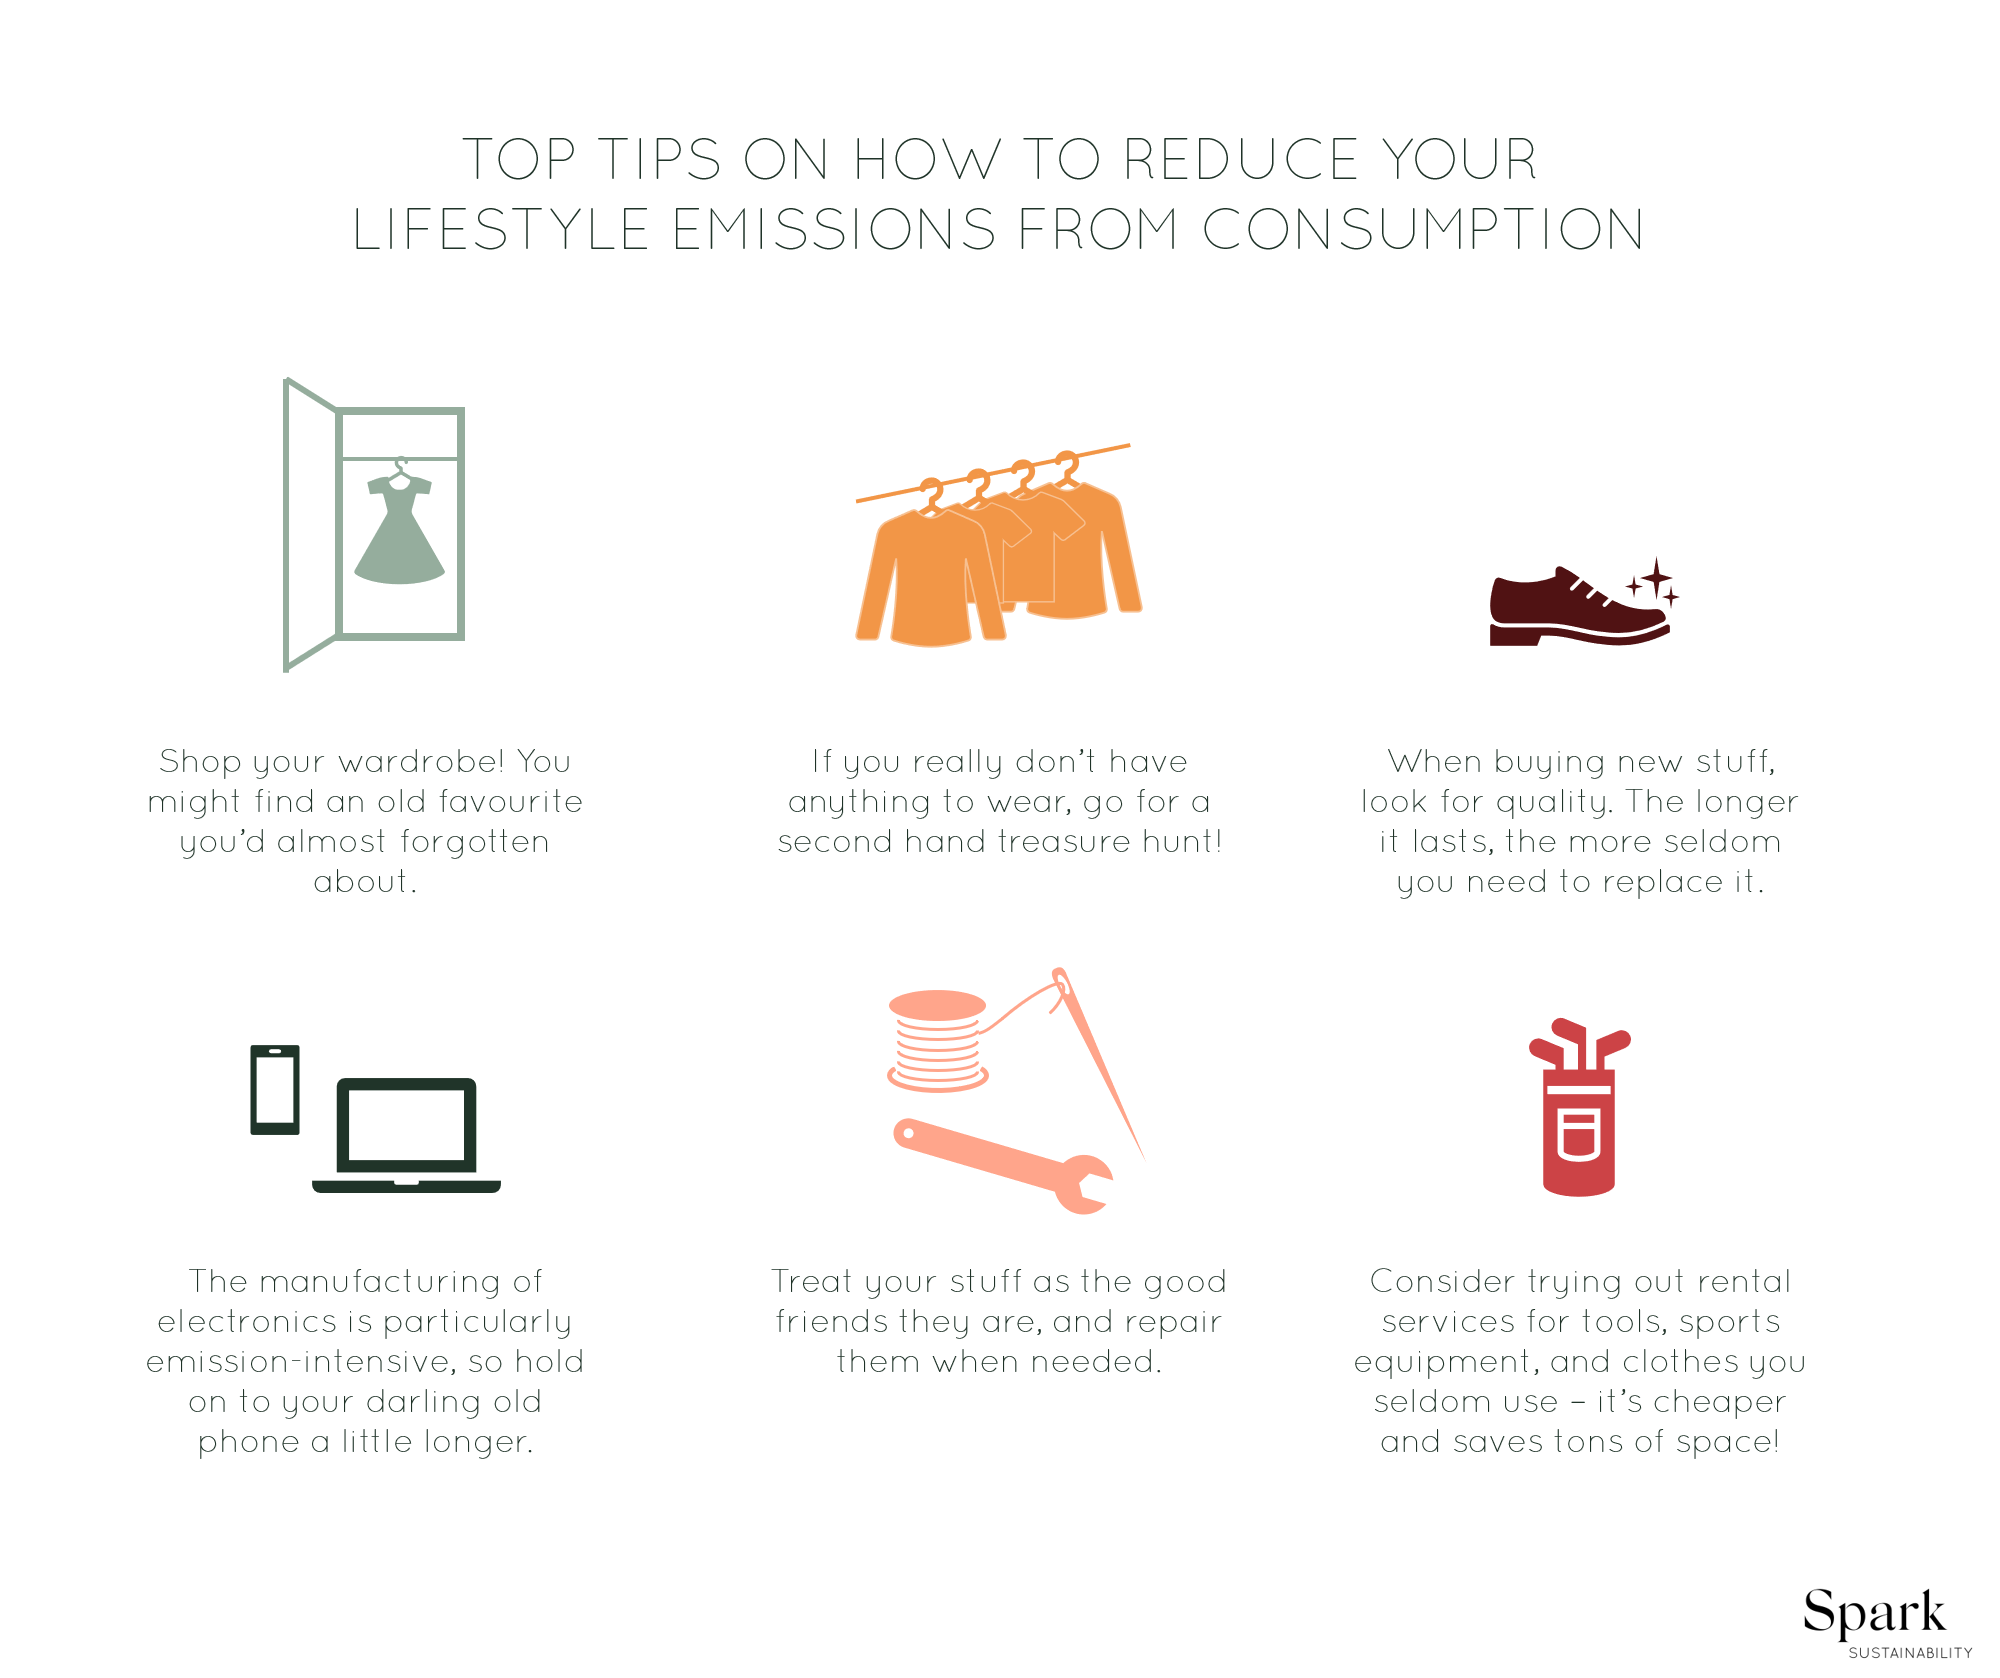 6 tips on how to reduce your lifestyle emissions from consumption